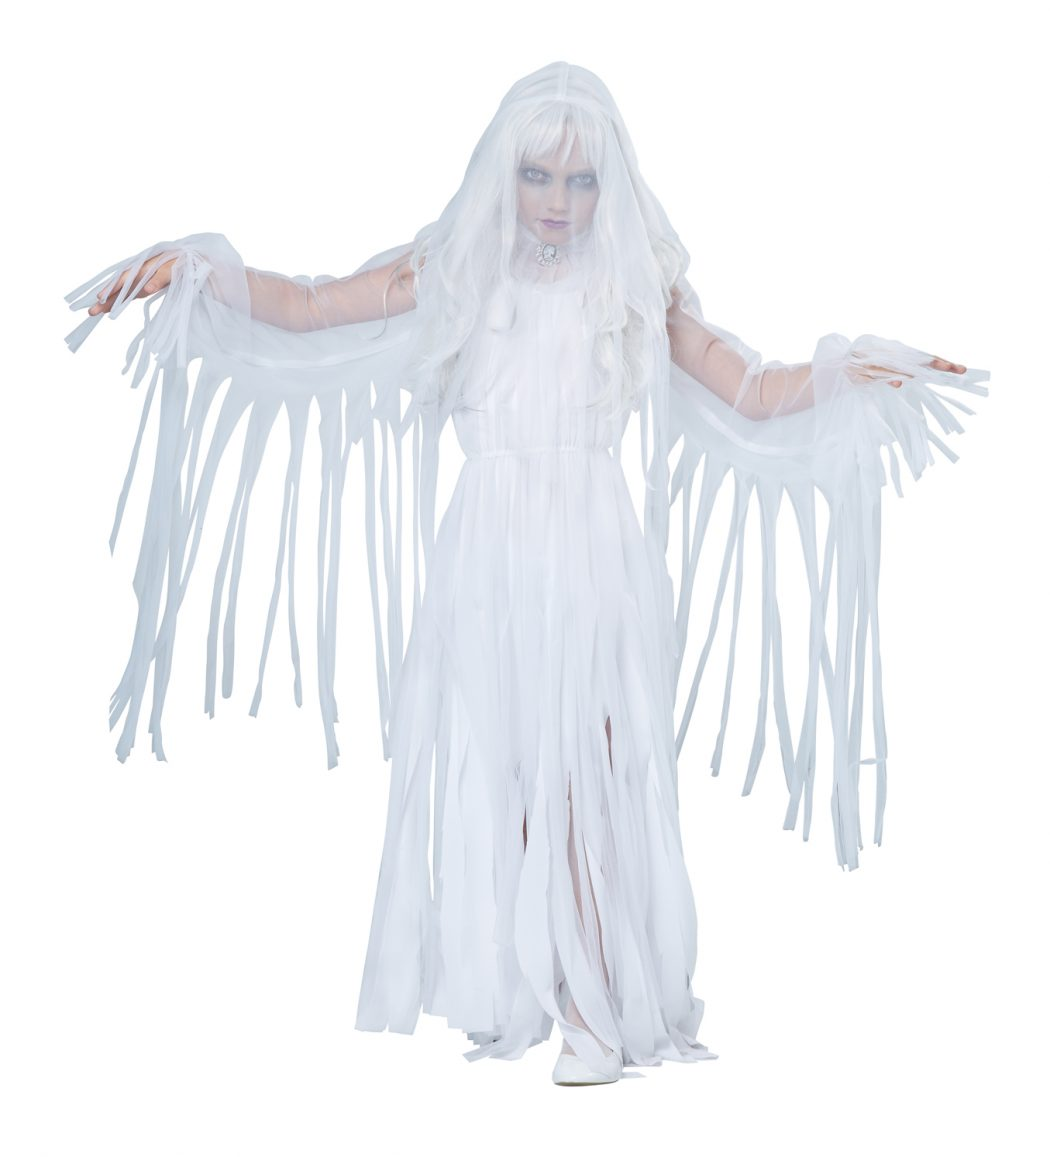 A-ghost2 Top 10 Teenagers Halloween Costumes Trends